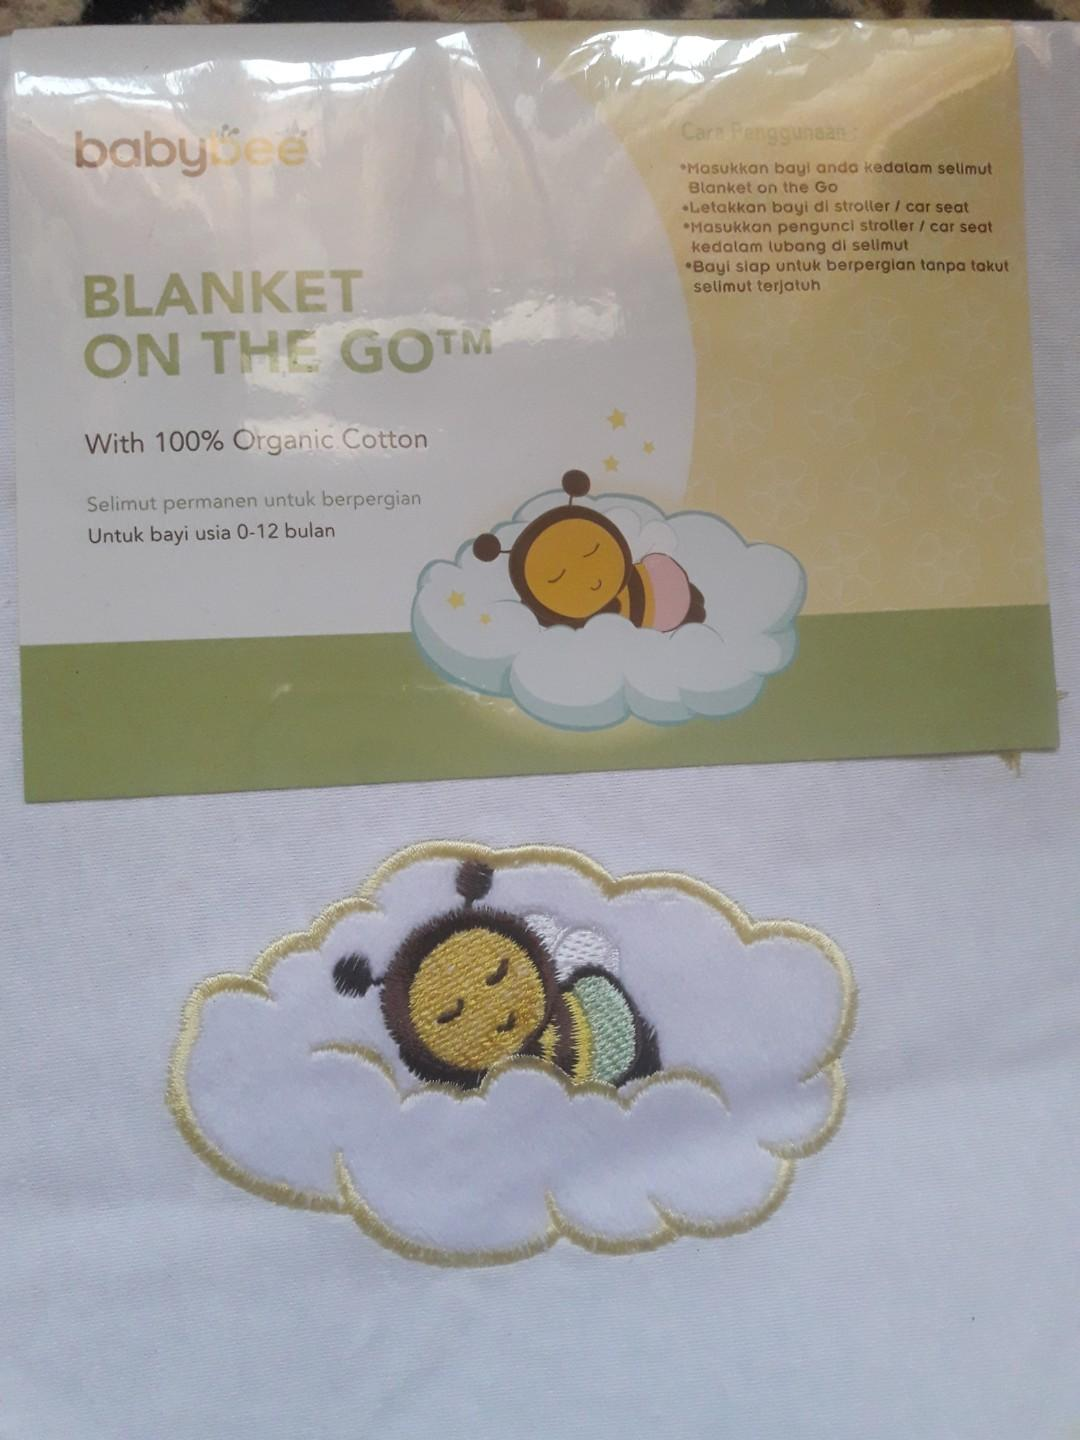 Blanked on the go Babybee